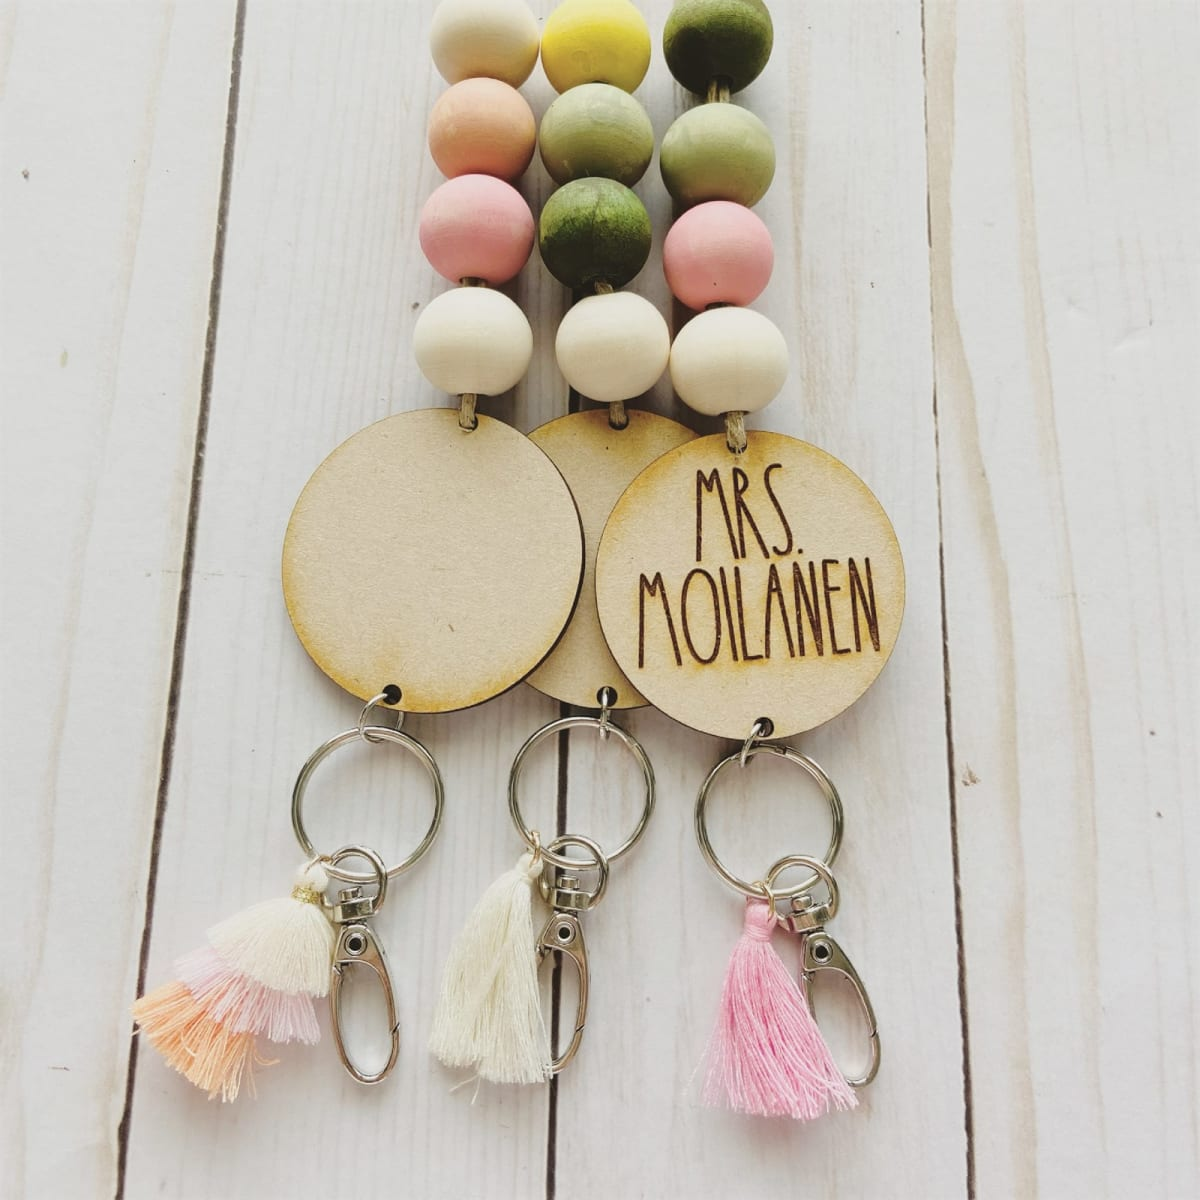 Personalized Teacher Lanyard! .99 with free shipping at Jane!